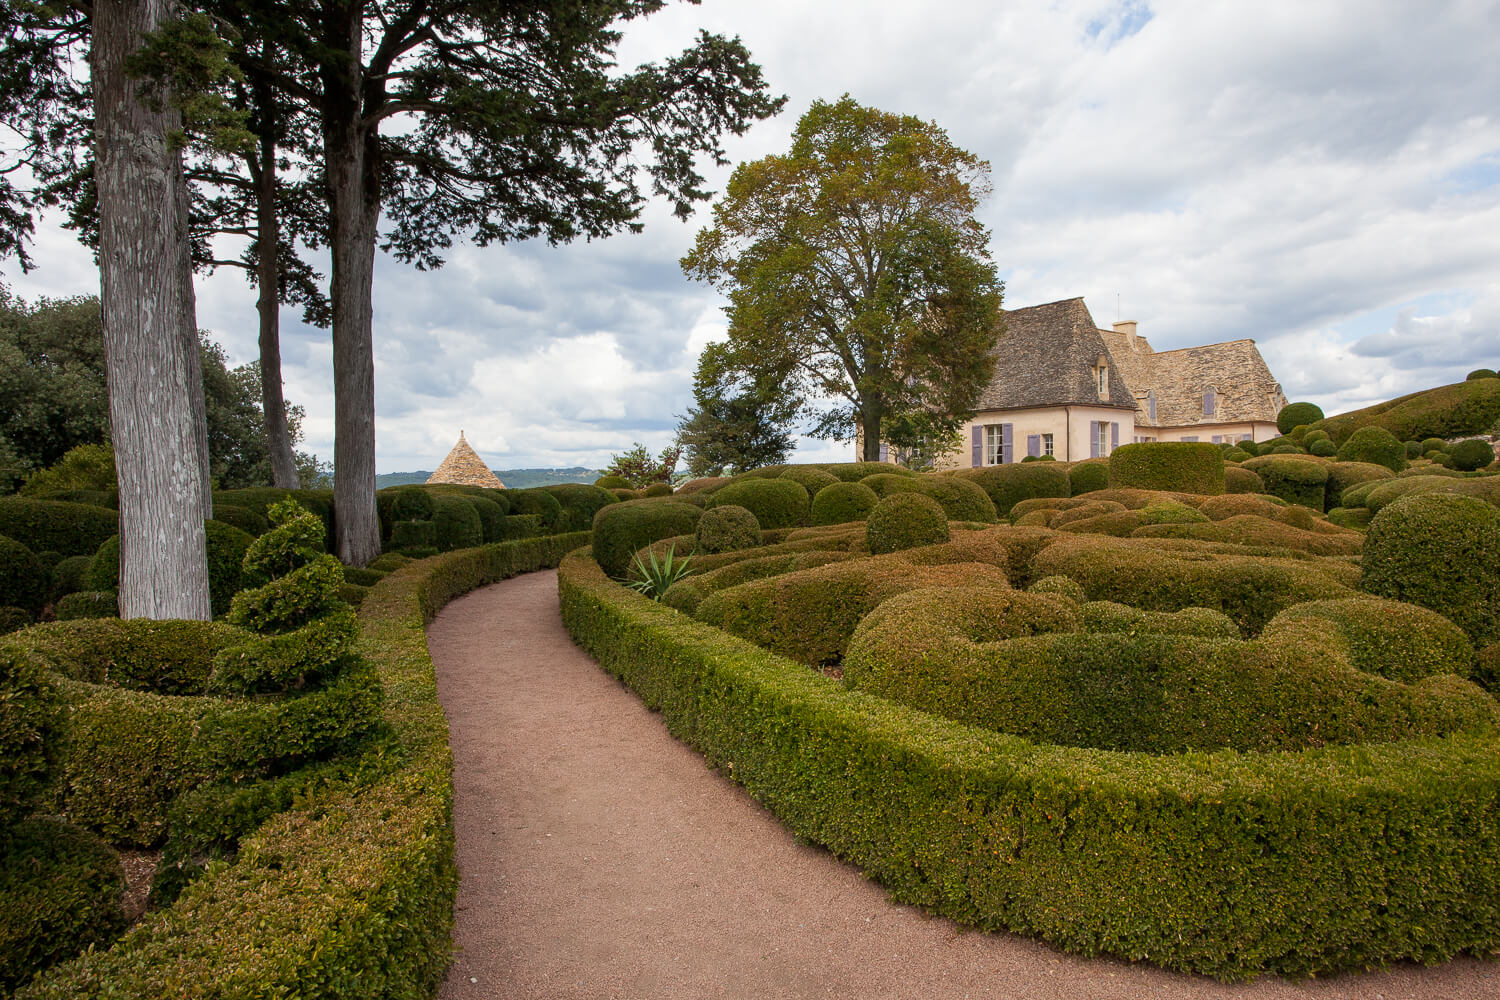 Get Lost in the Gardens of Marqueyssac | Cultivated and Wild